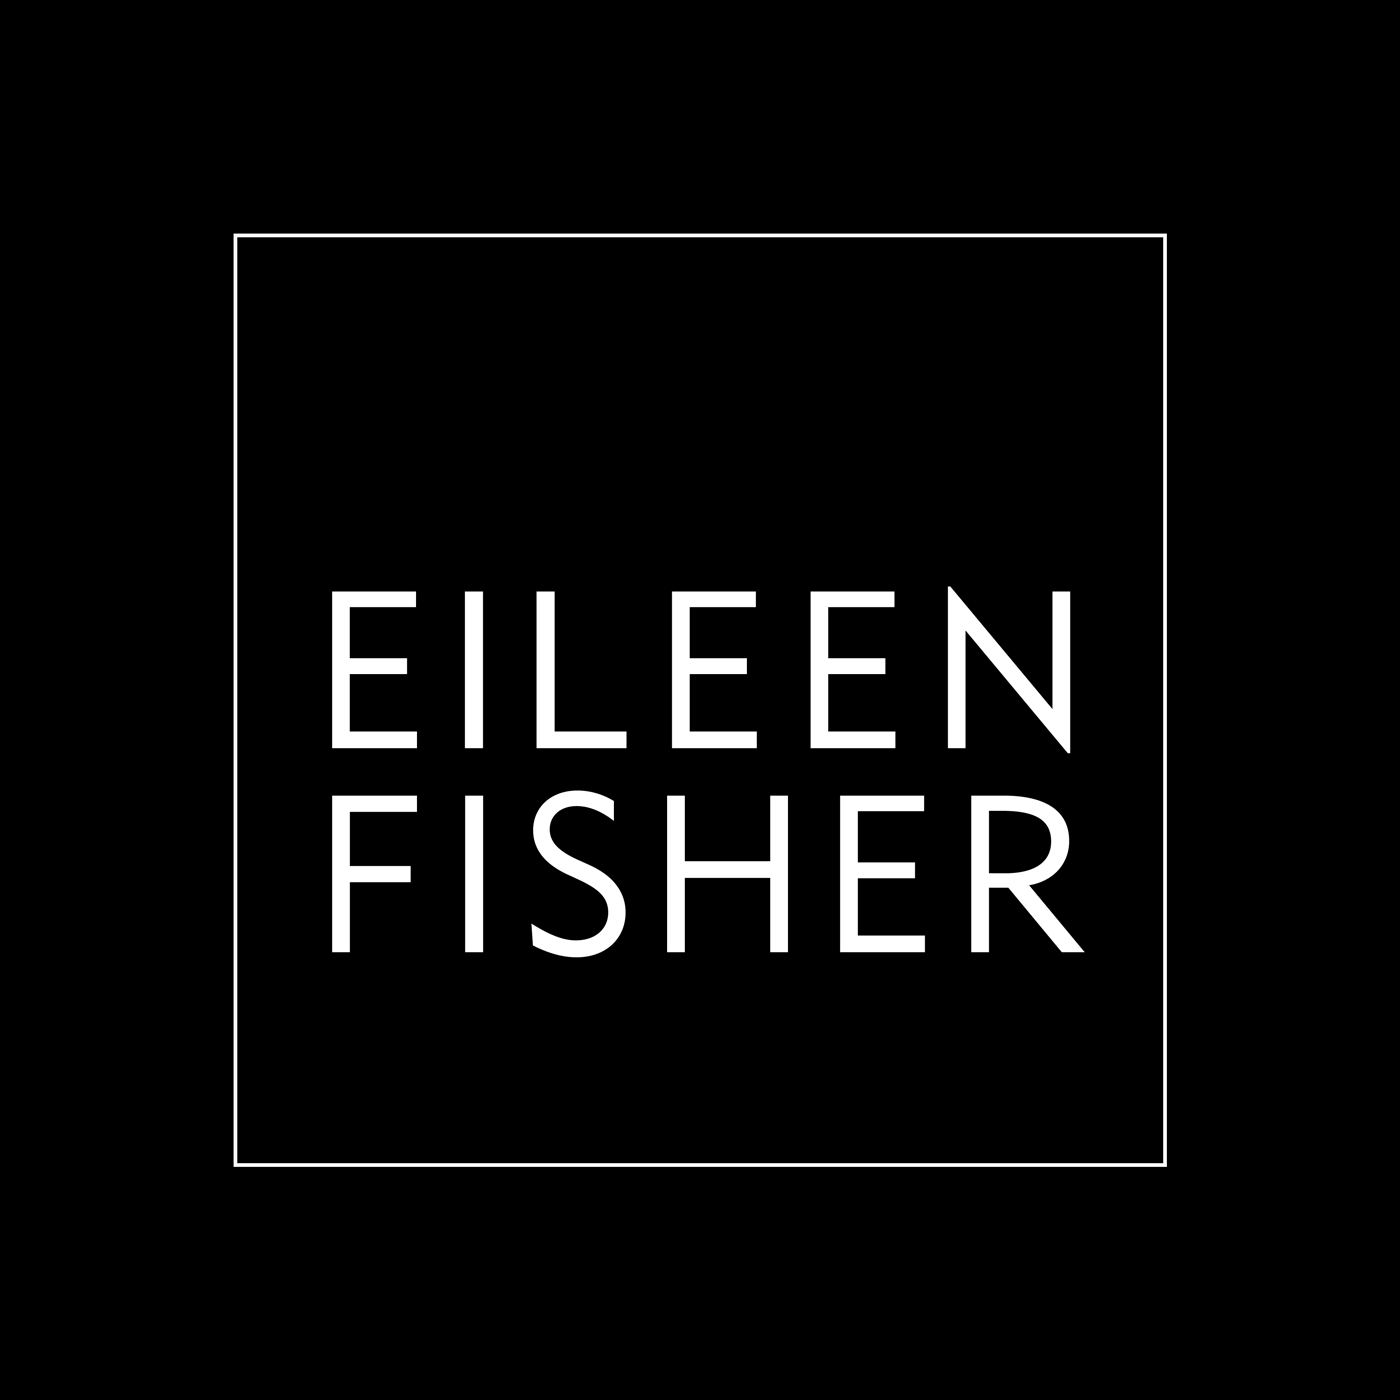 Image eileen fisher logo